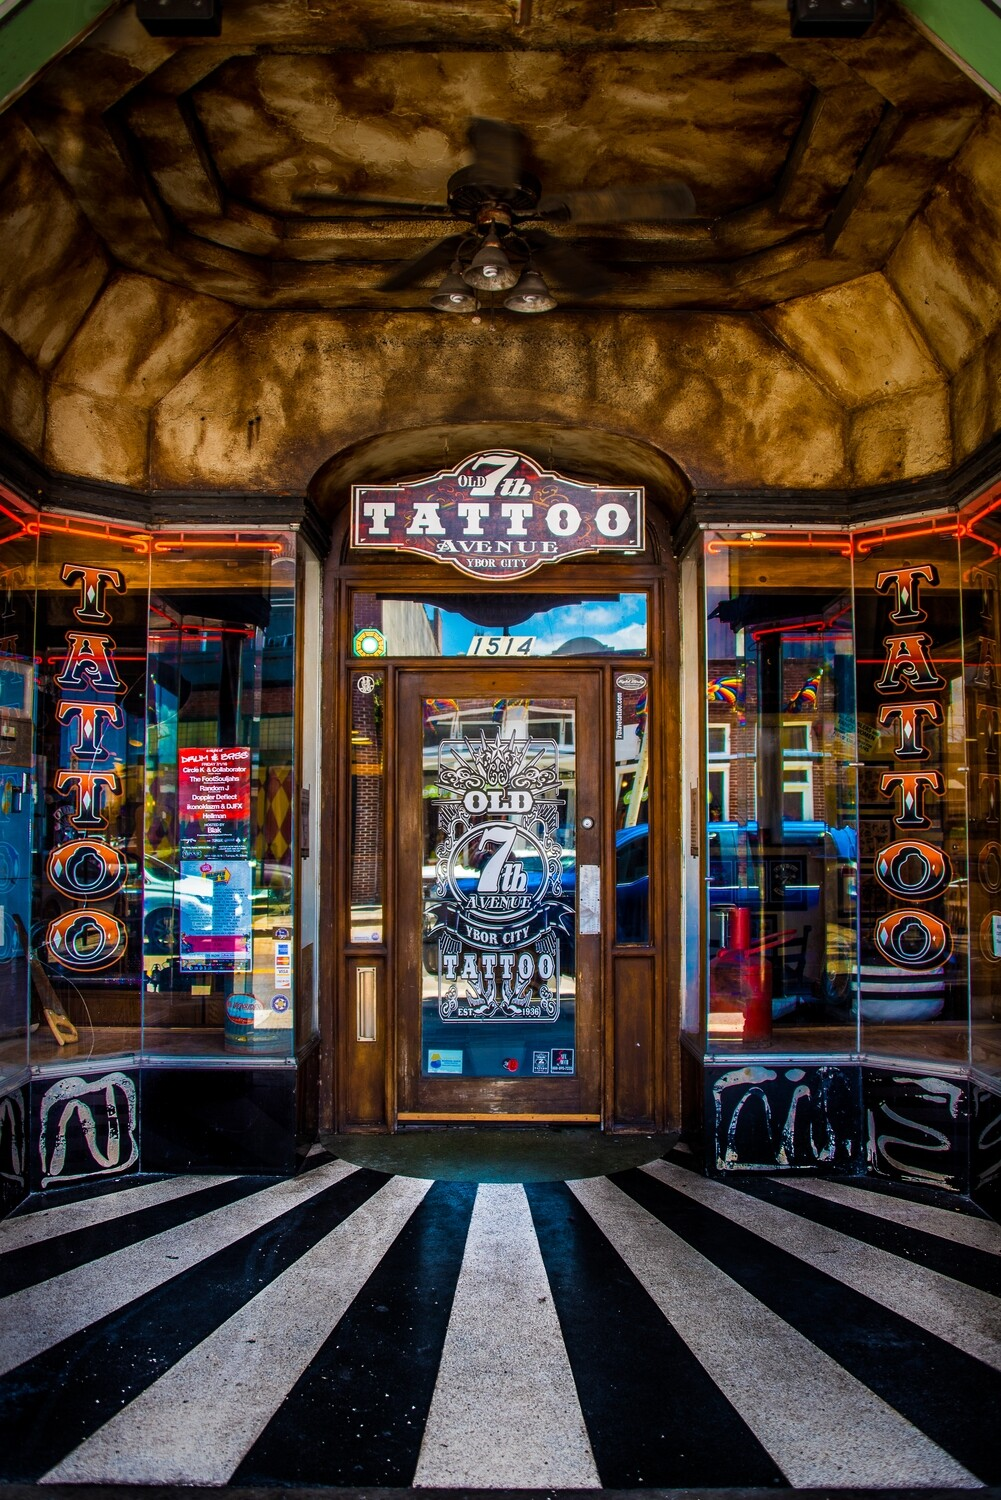 Tattoo Parlor—Ybor City, Tampa, Florida